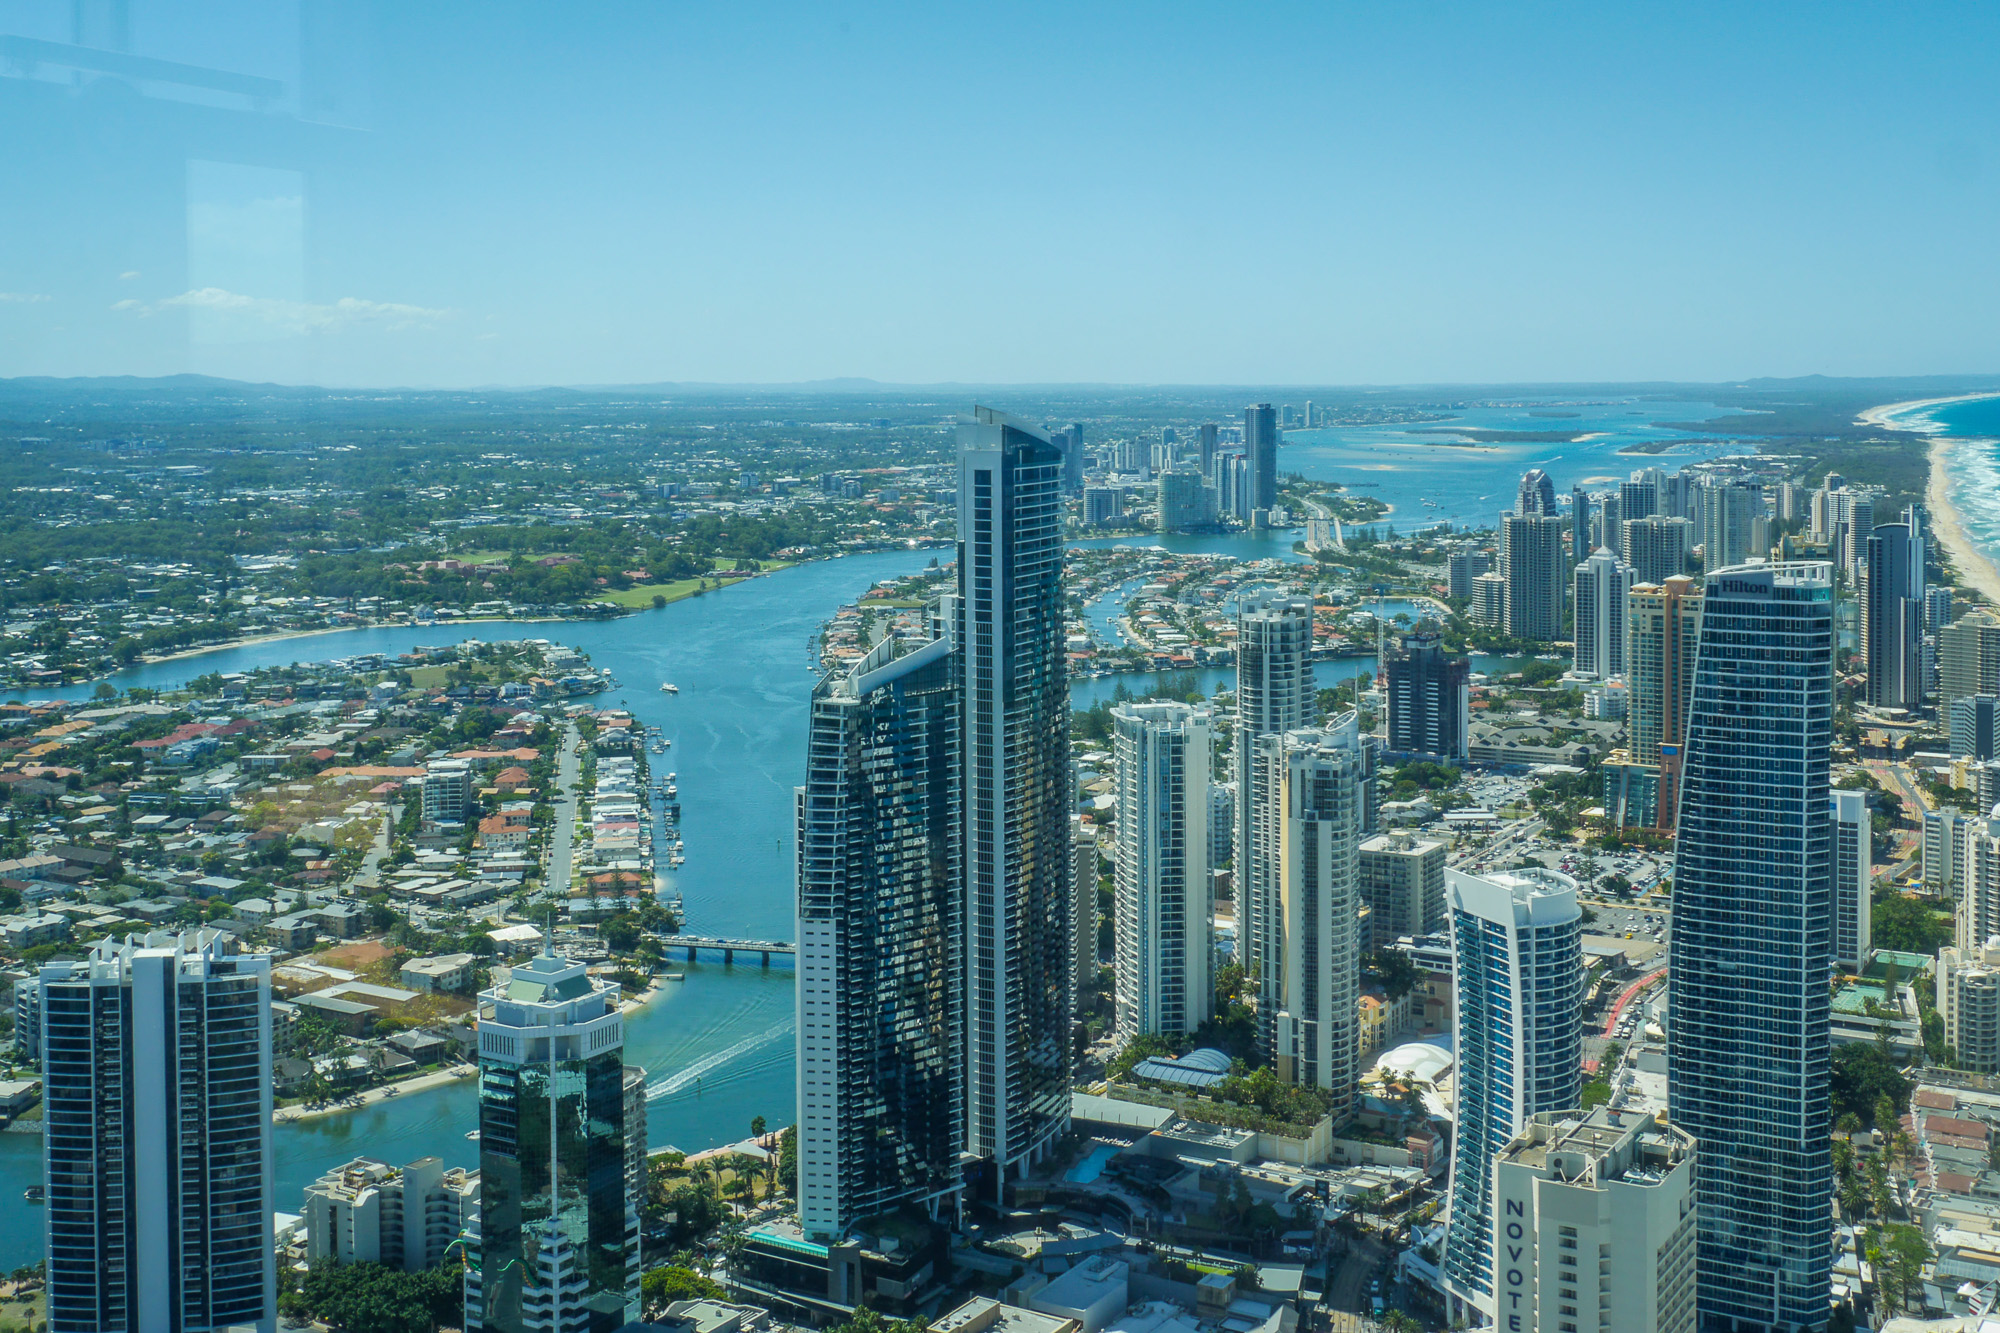 Skypoint Observation Deck, Gold Coast